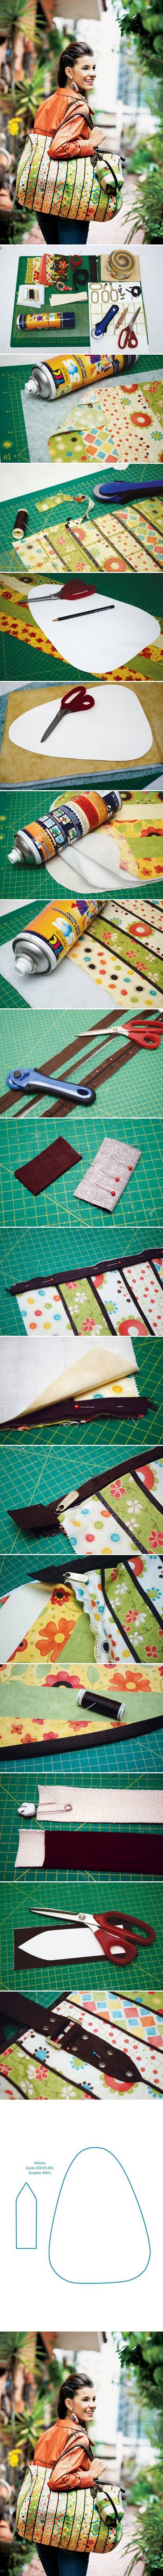 DIY Sew Travel Bag DIY Projects | UsefulDIY.com